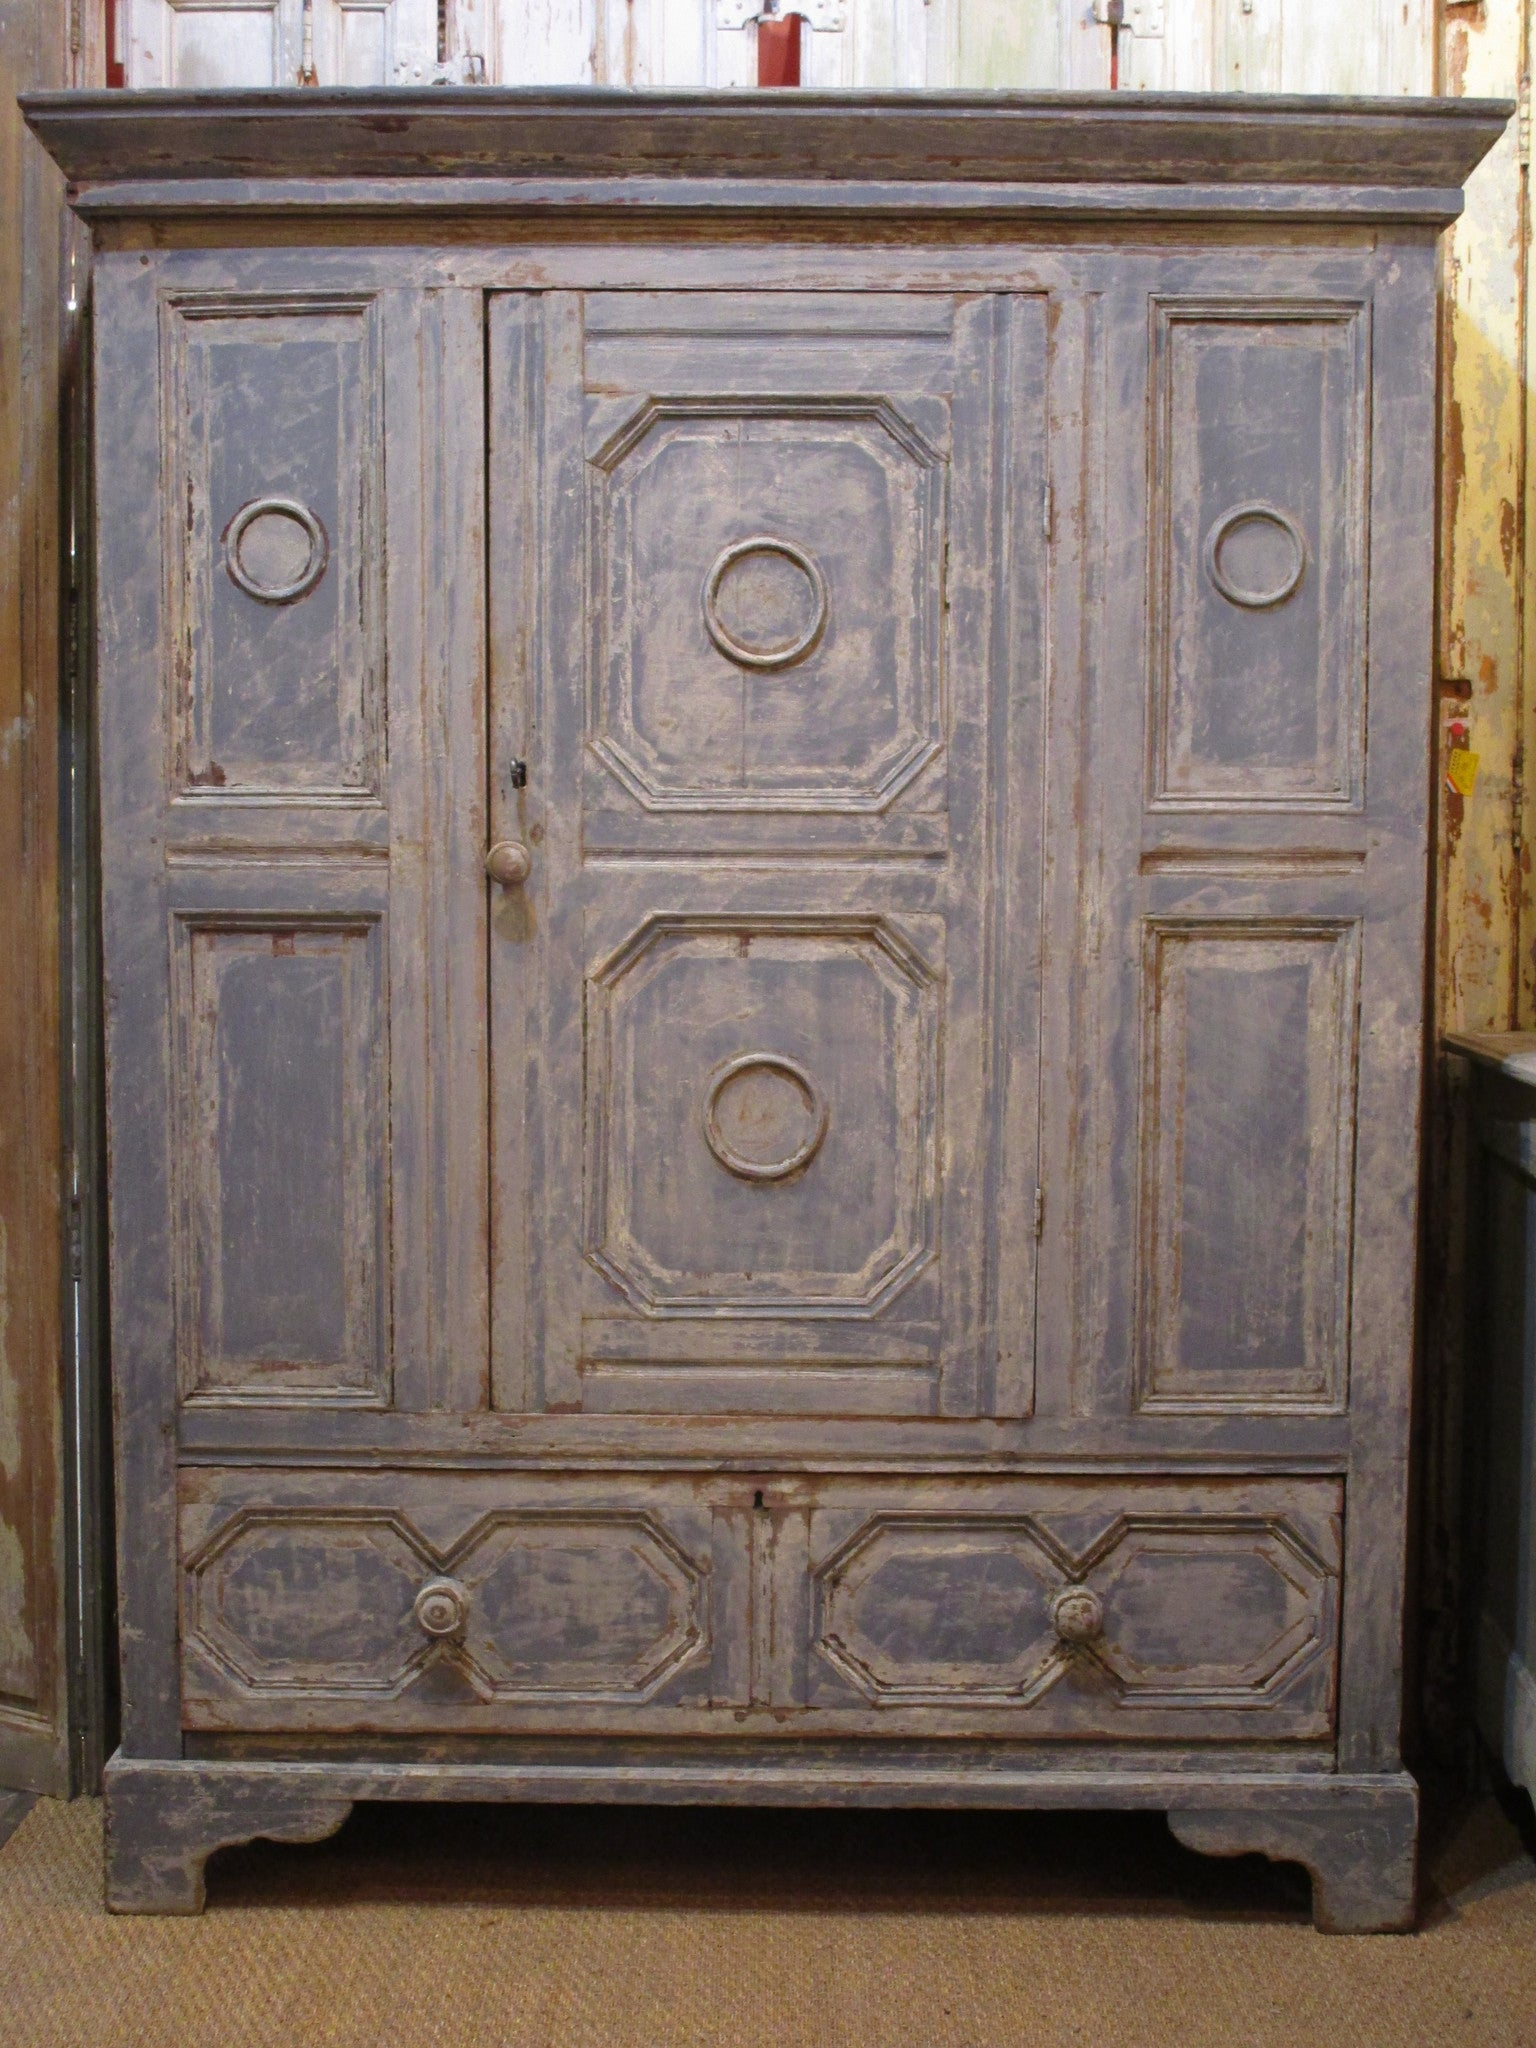 Early 18th century french oak voyage armoire